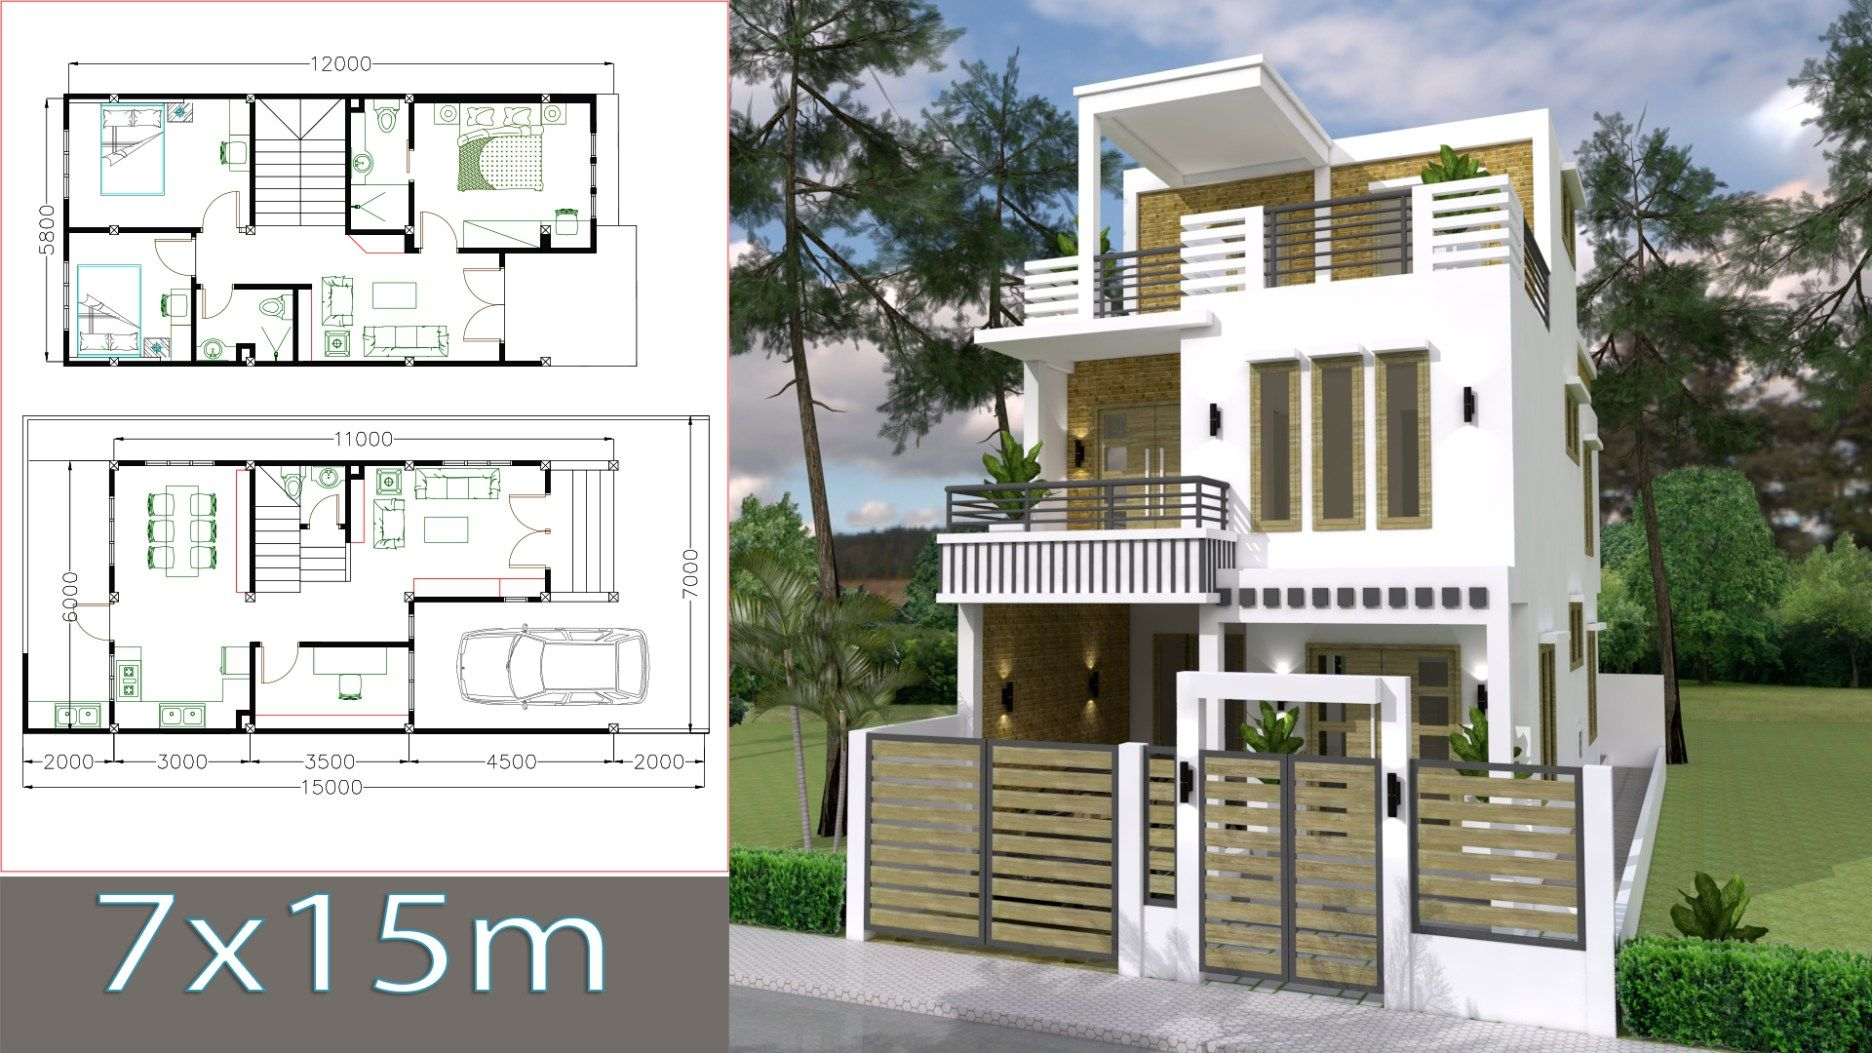 Sketchup home design plan   with bedrooms  samphoas also   favorite house rh pinterest